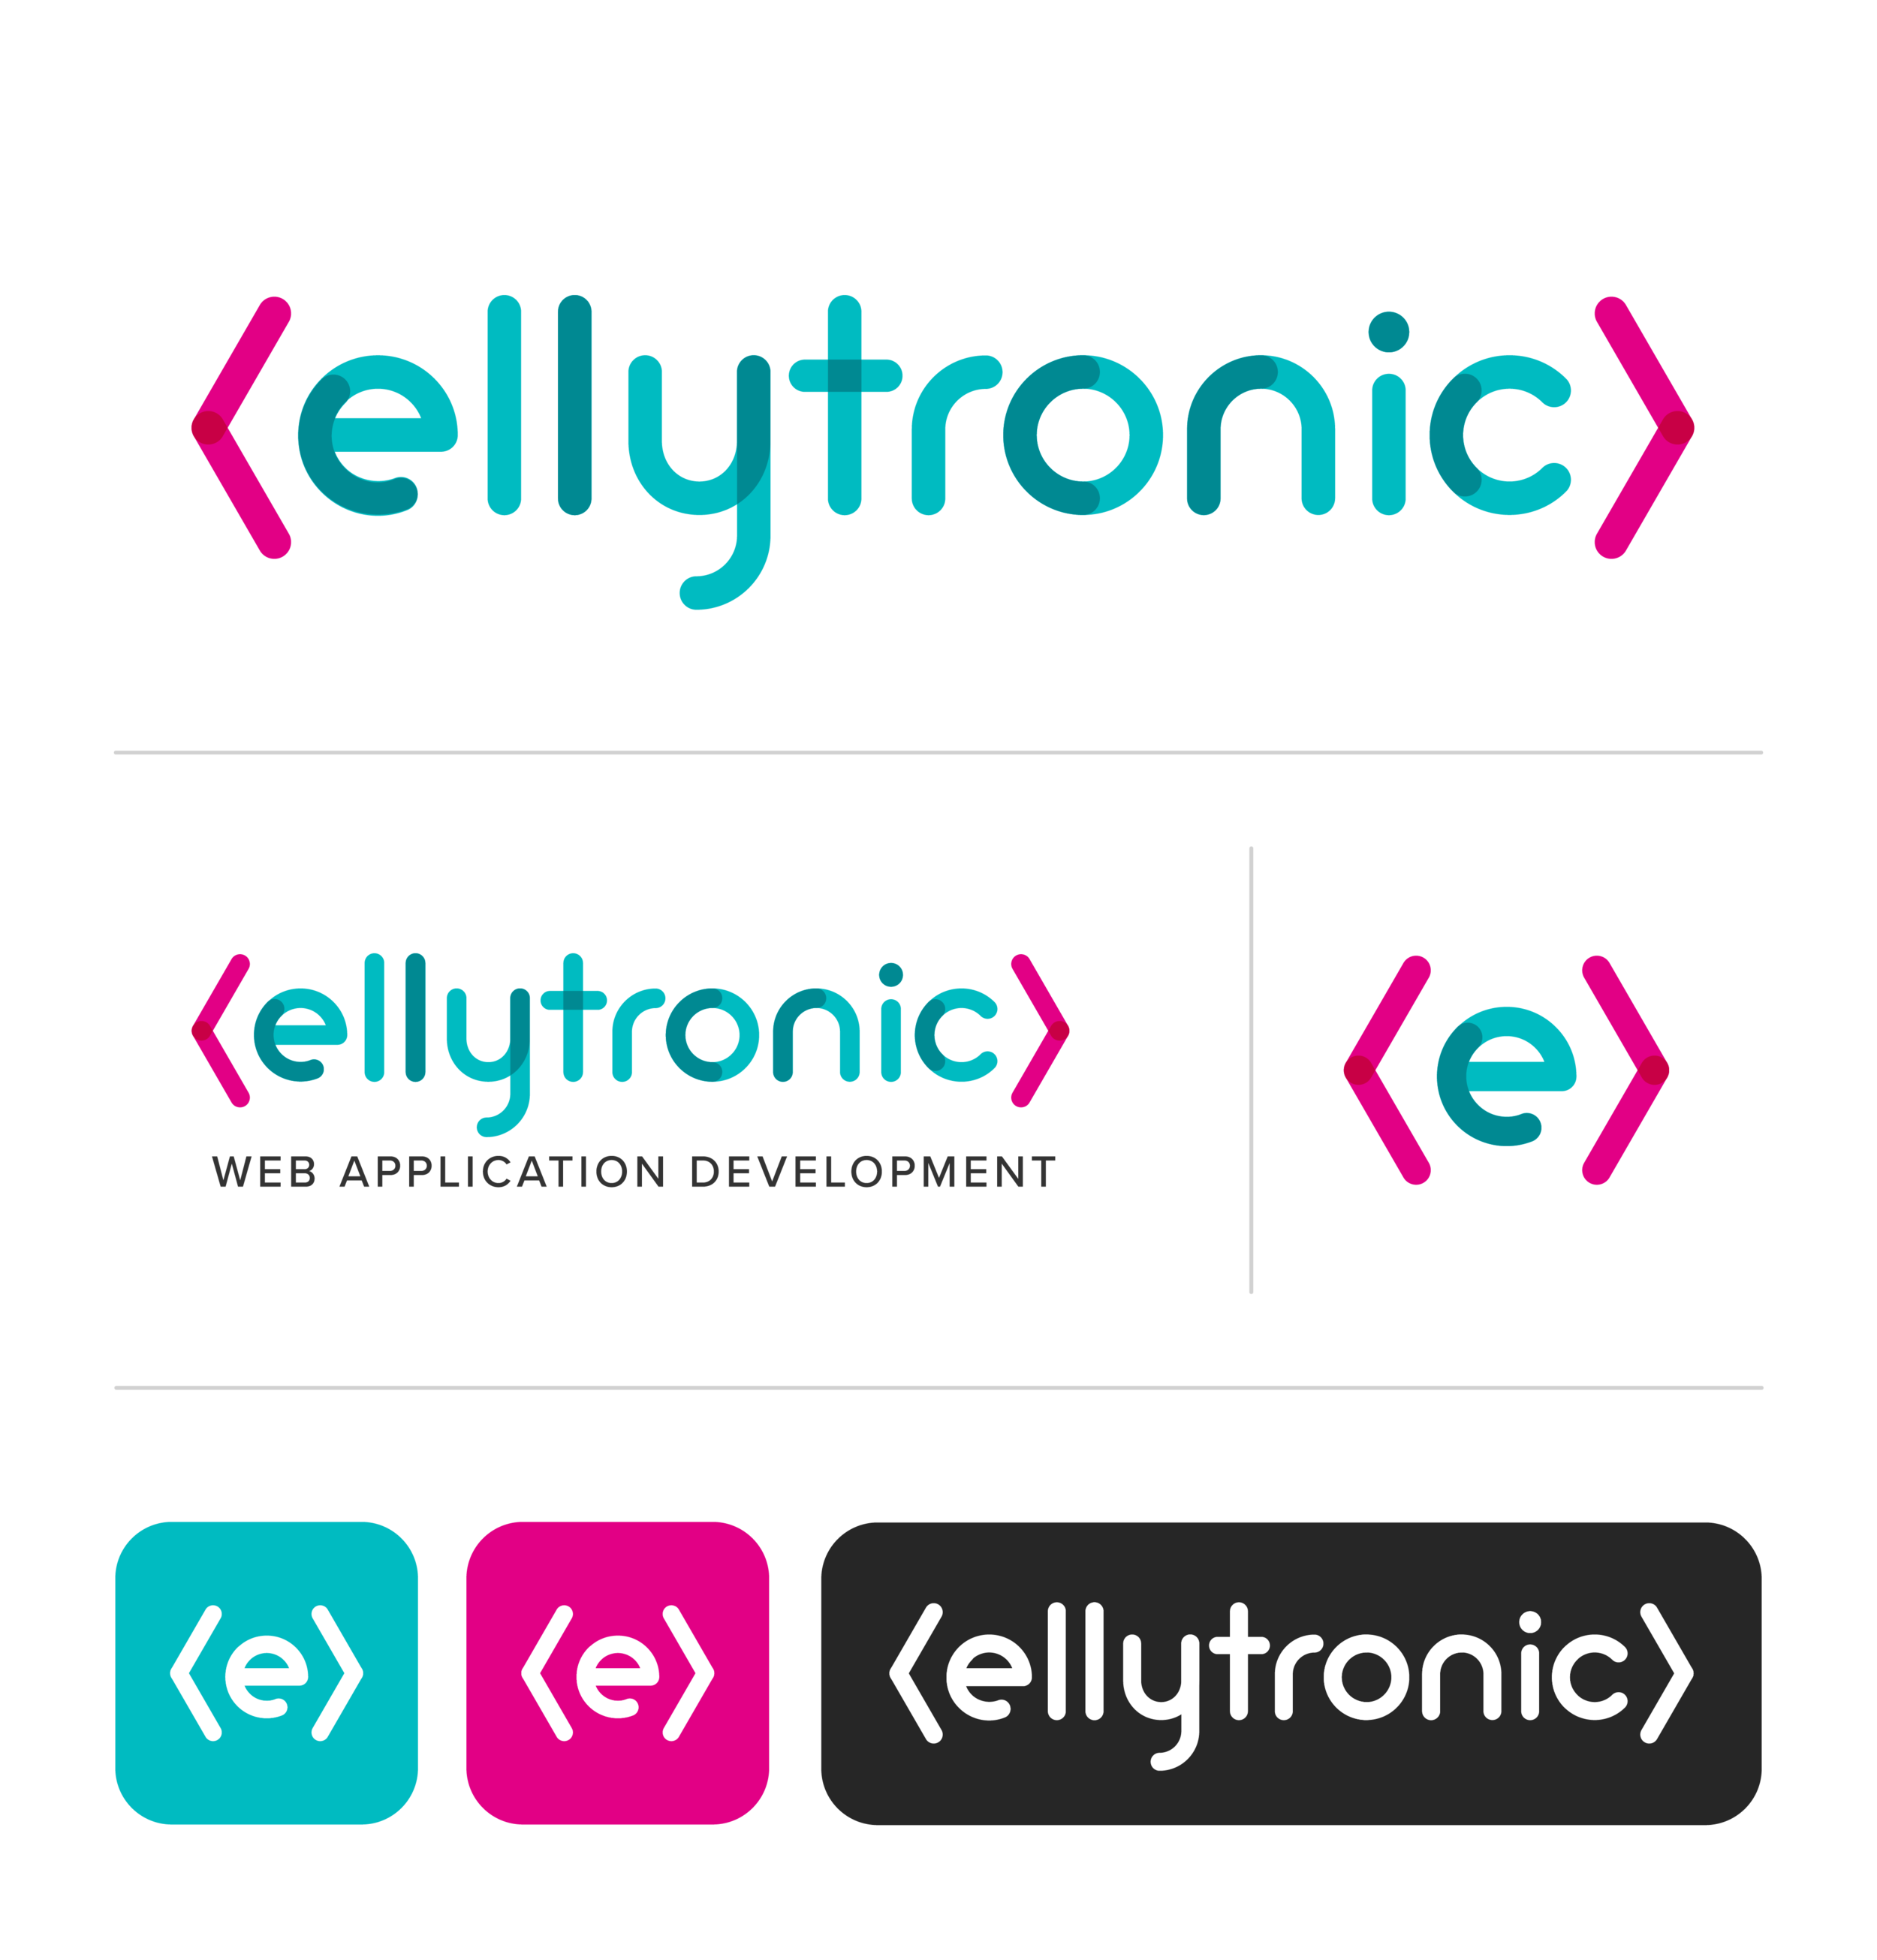 ellytronic_style_guide-02.png